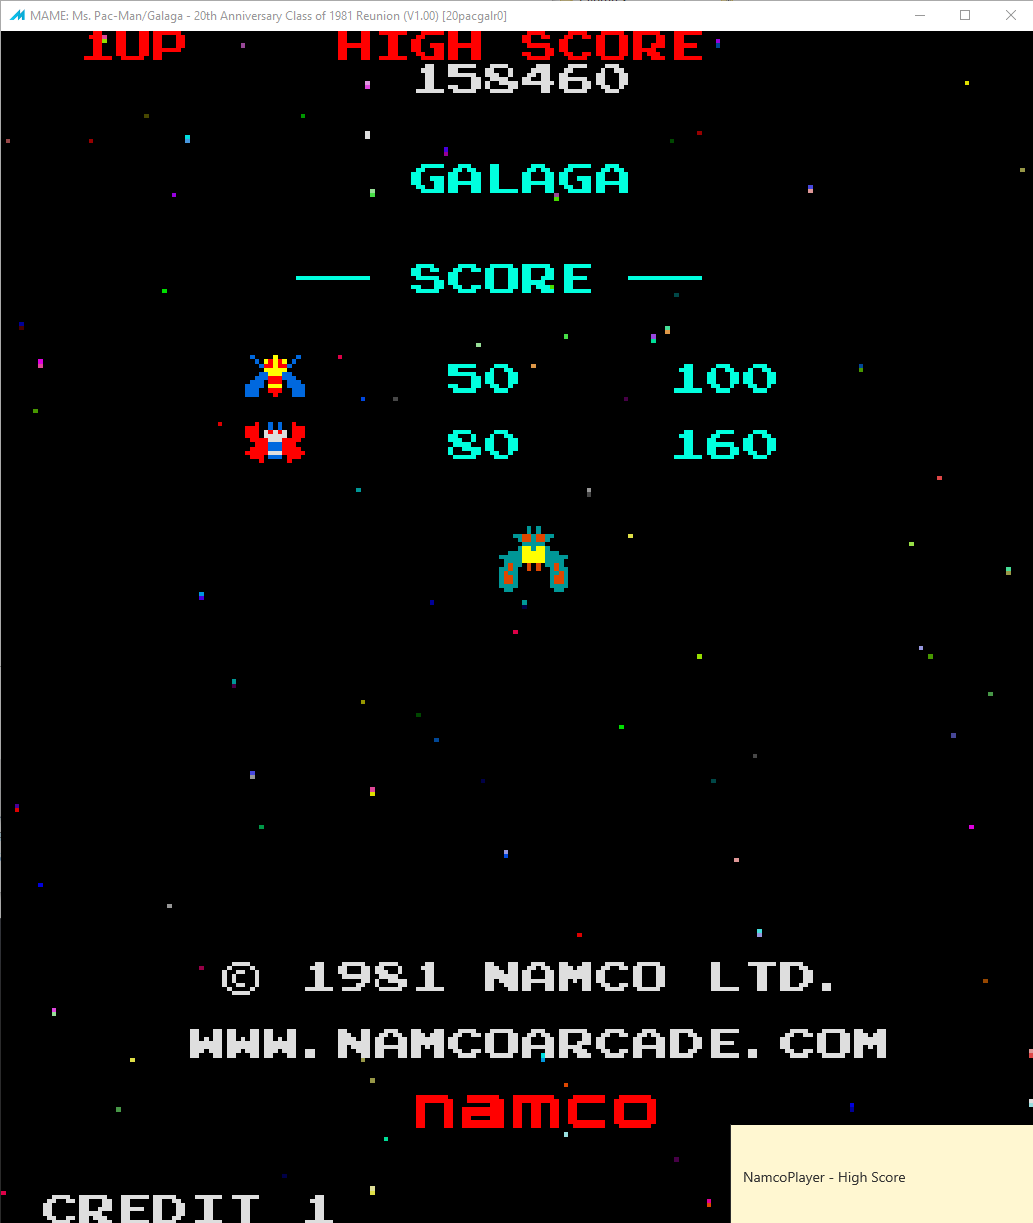 NamcoPlayer: Ms. Pacman/Galaga: Class of 1981: Galaga [20pacgal] (Arcade Emulated / M.A.M.E.) 158,460 points on 2020-11-02 20:30:14